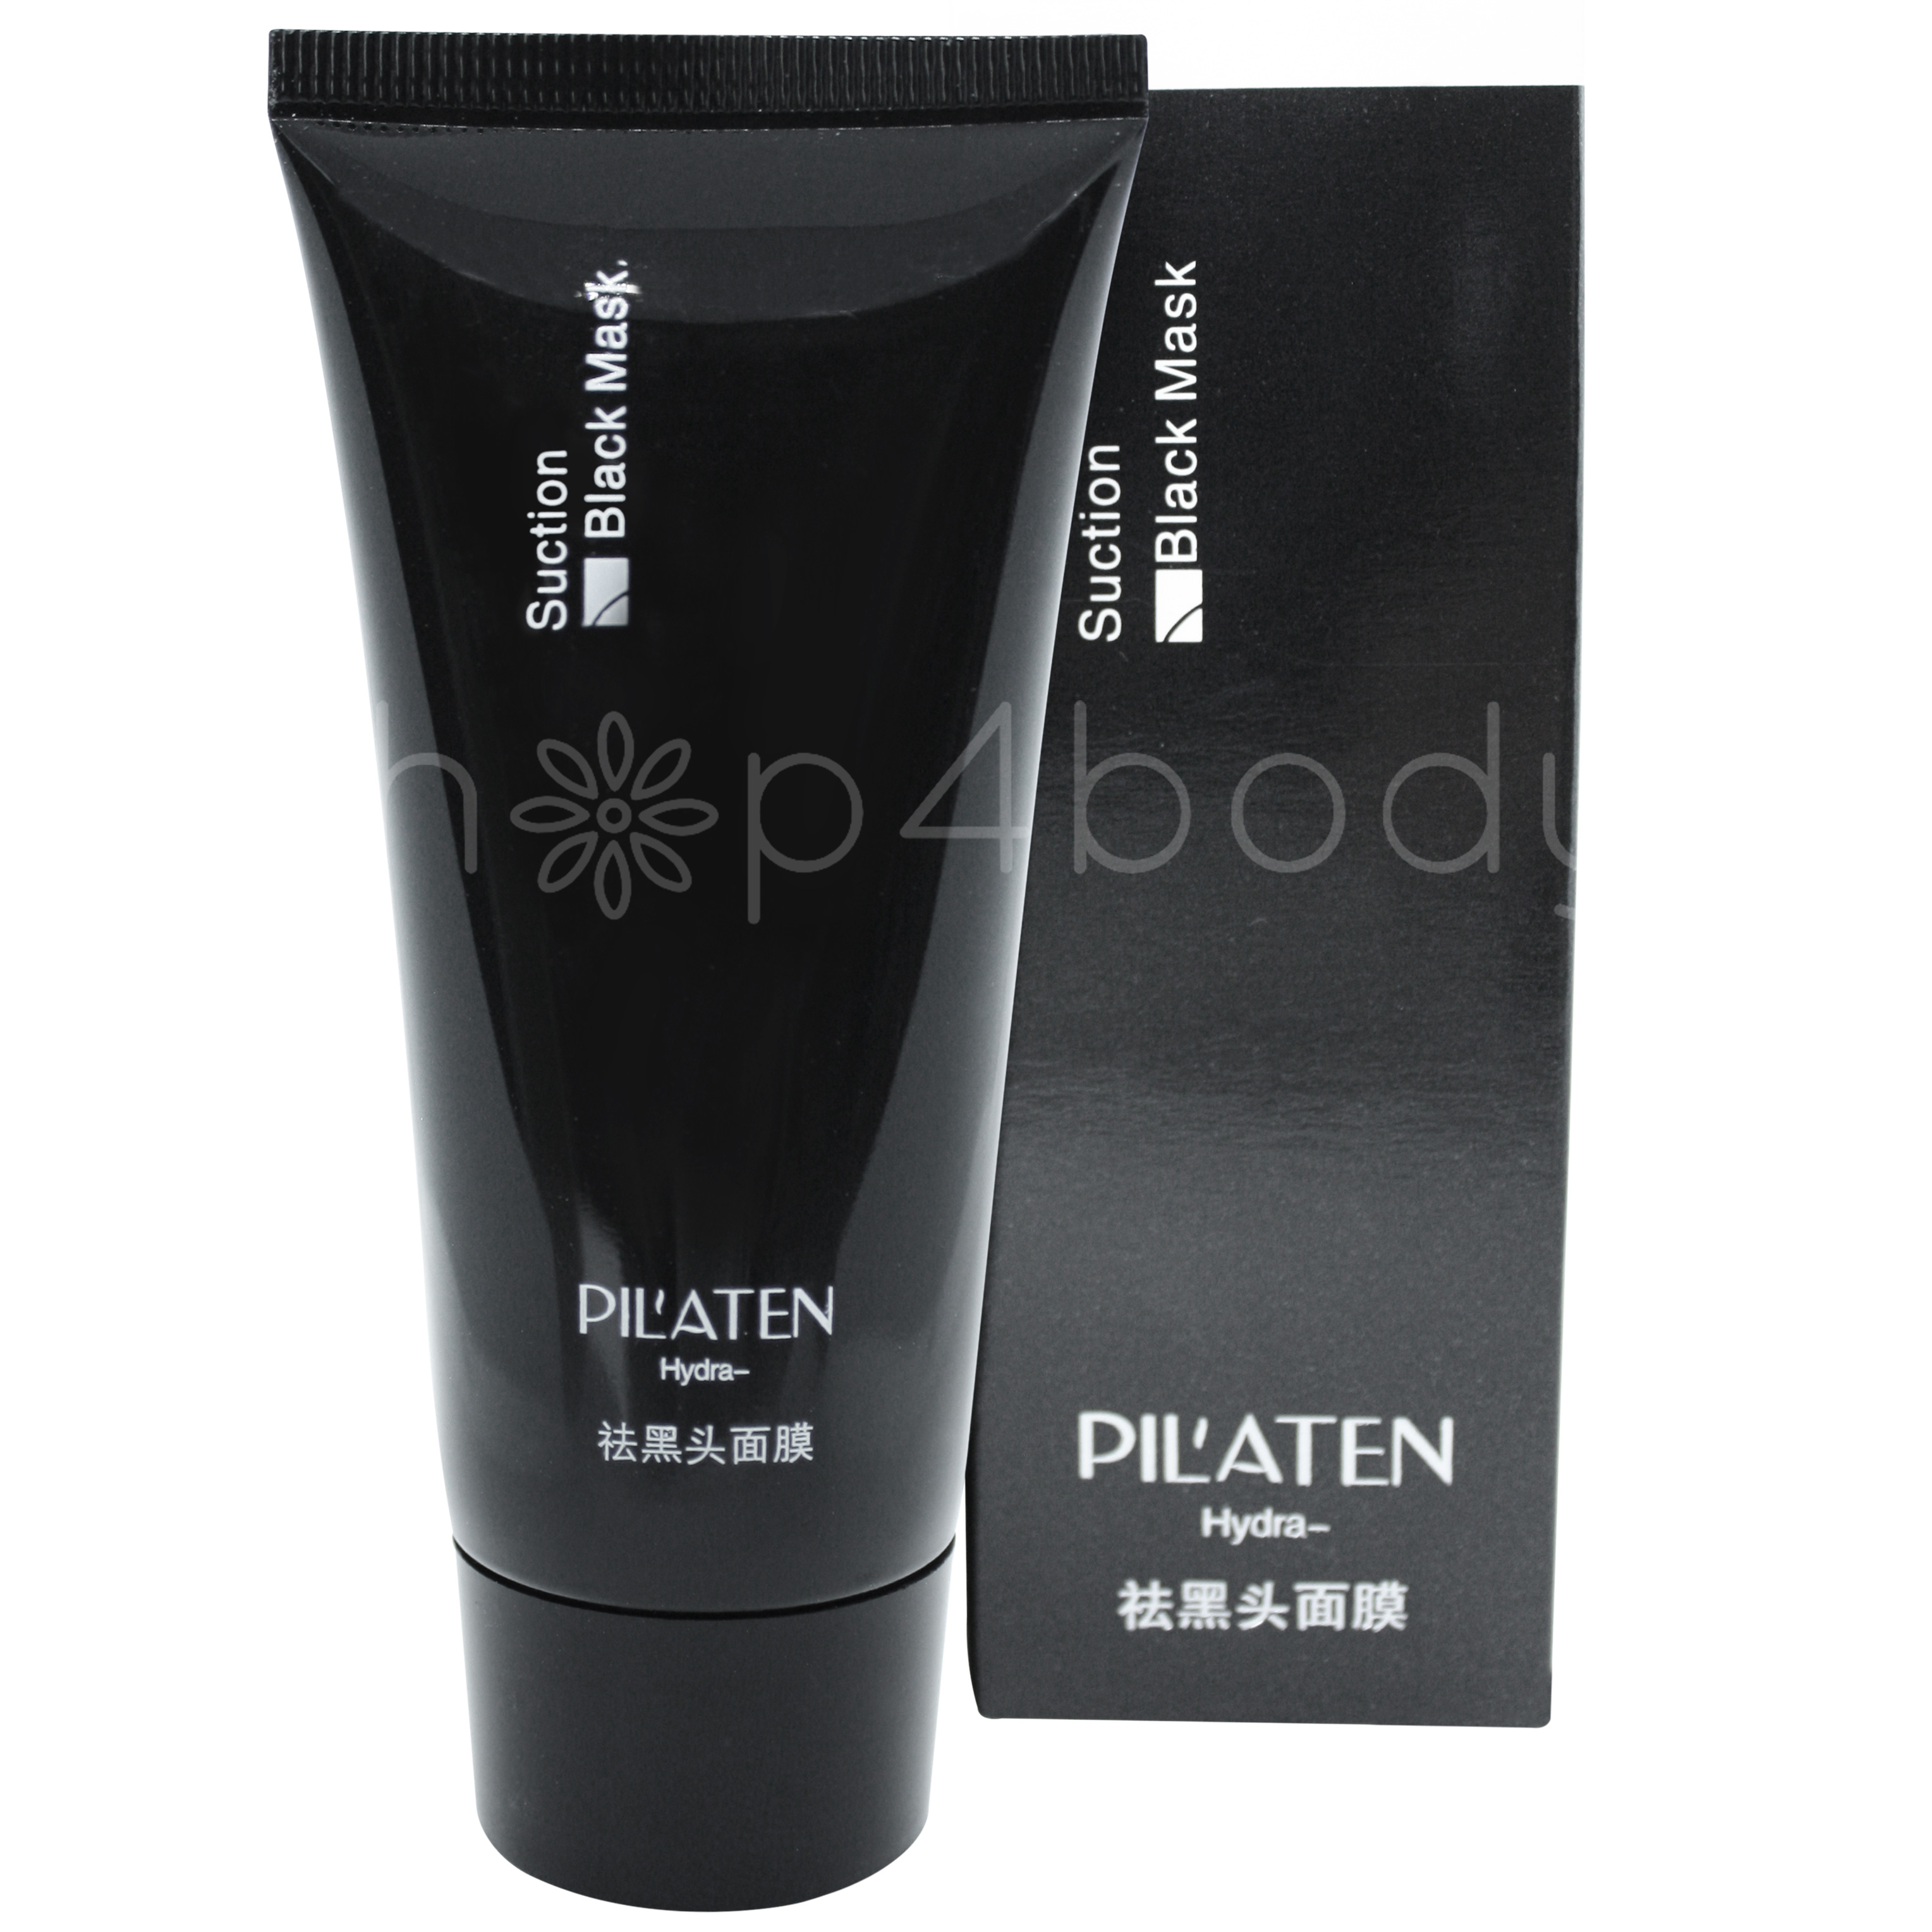 pilaten-black-mask-60-ml-tube.jpg